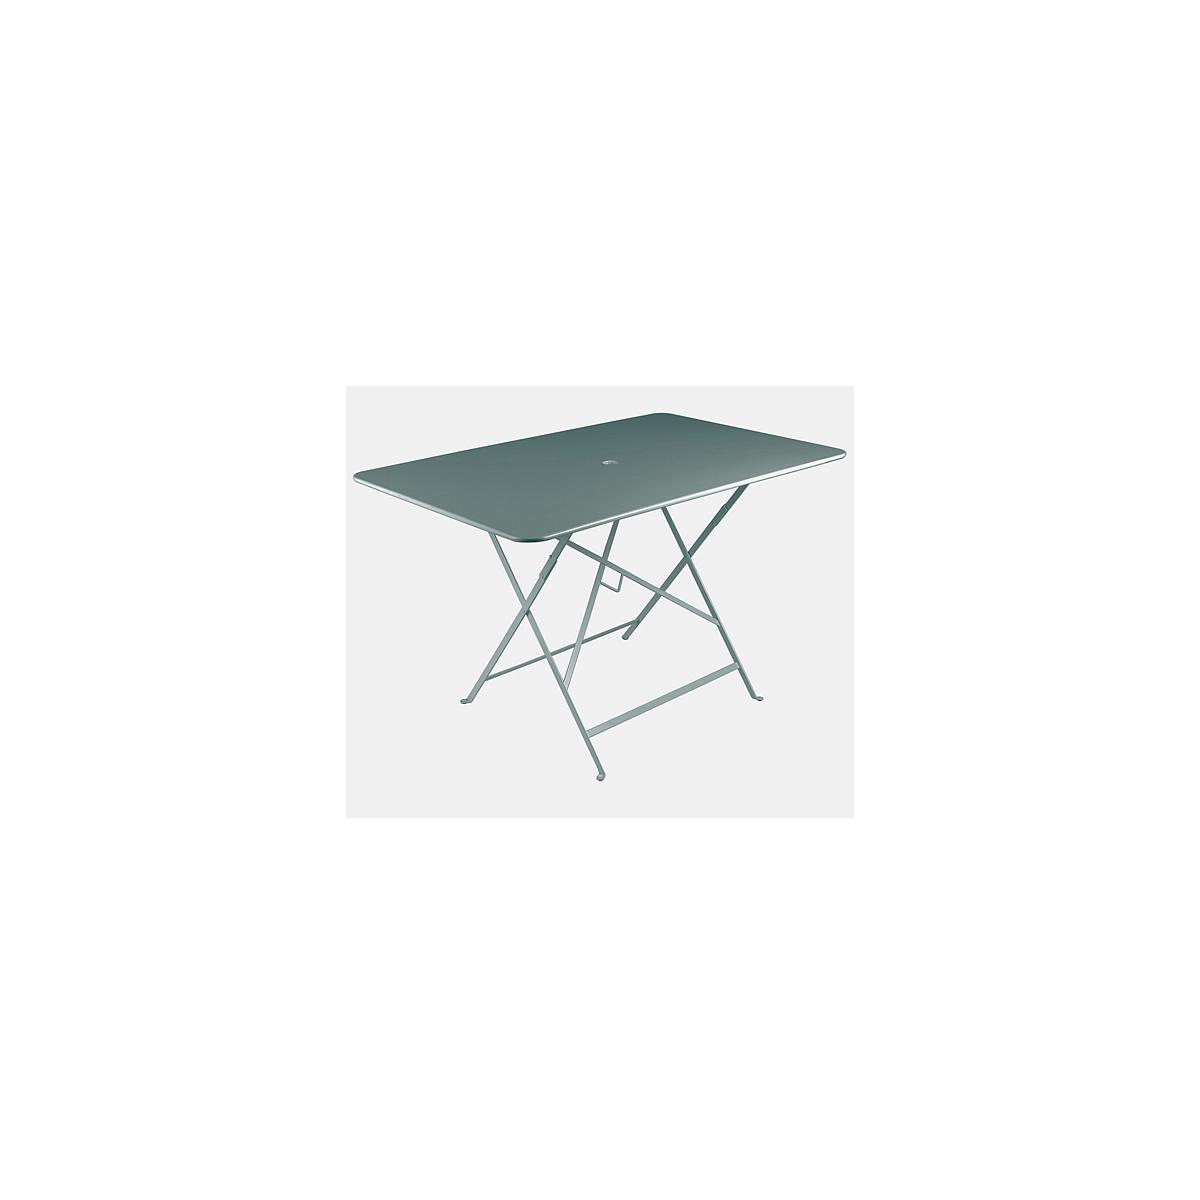 BISTRO by Fermob Table 117x77cm Gris orage